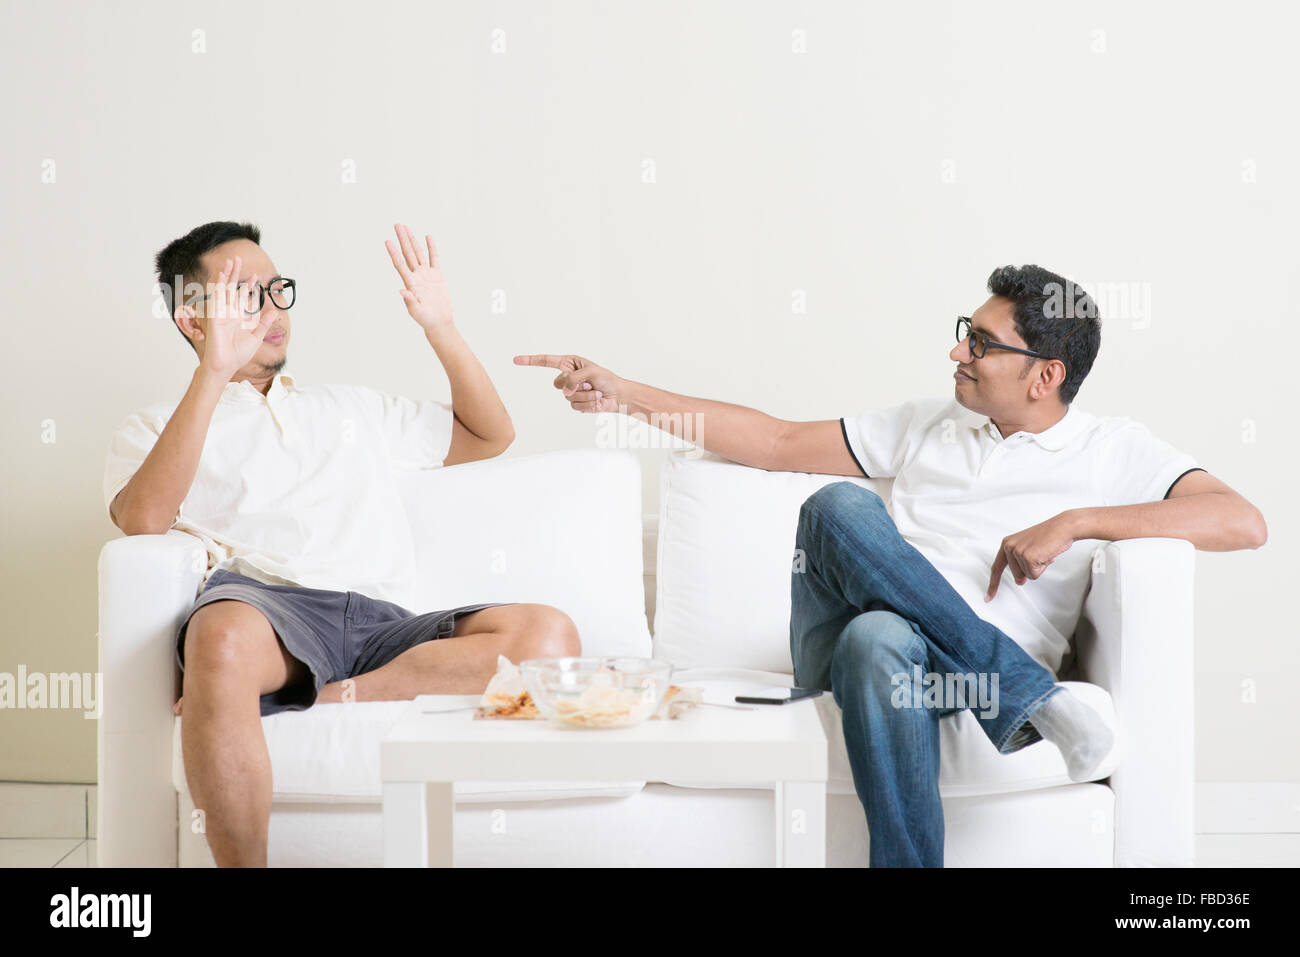 Men arguing. Two young male friend having argument at home. Multiracial people friendship. - Stock Image